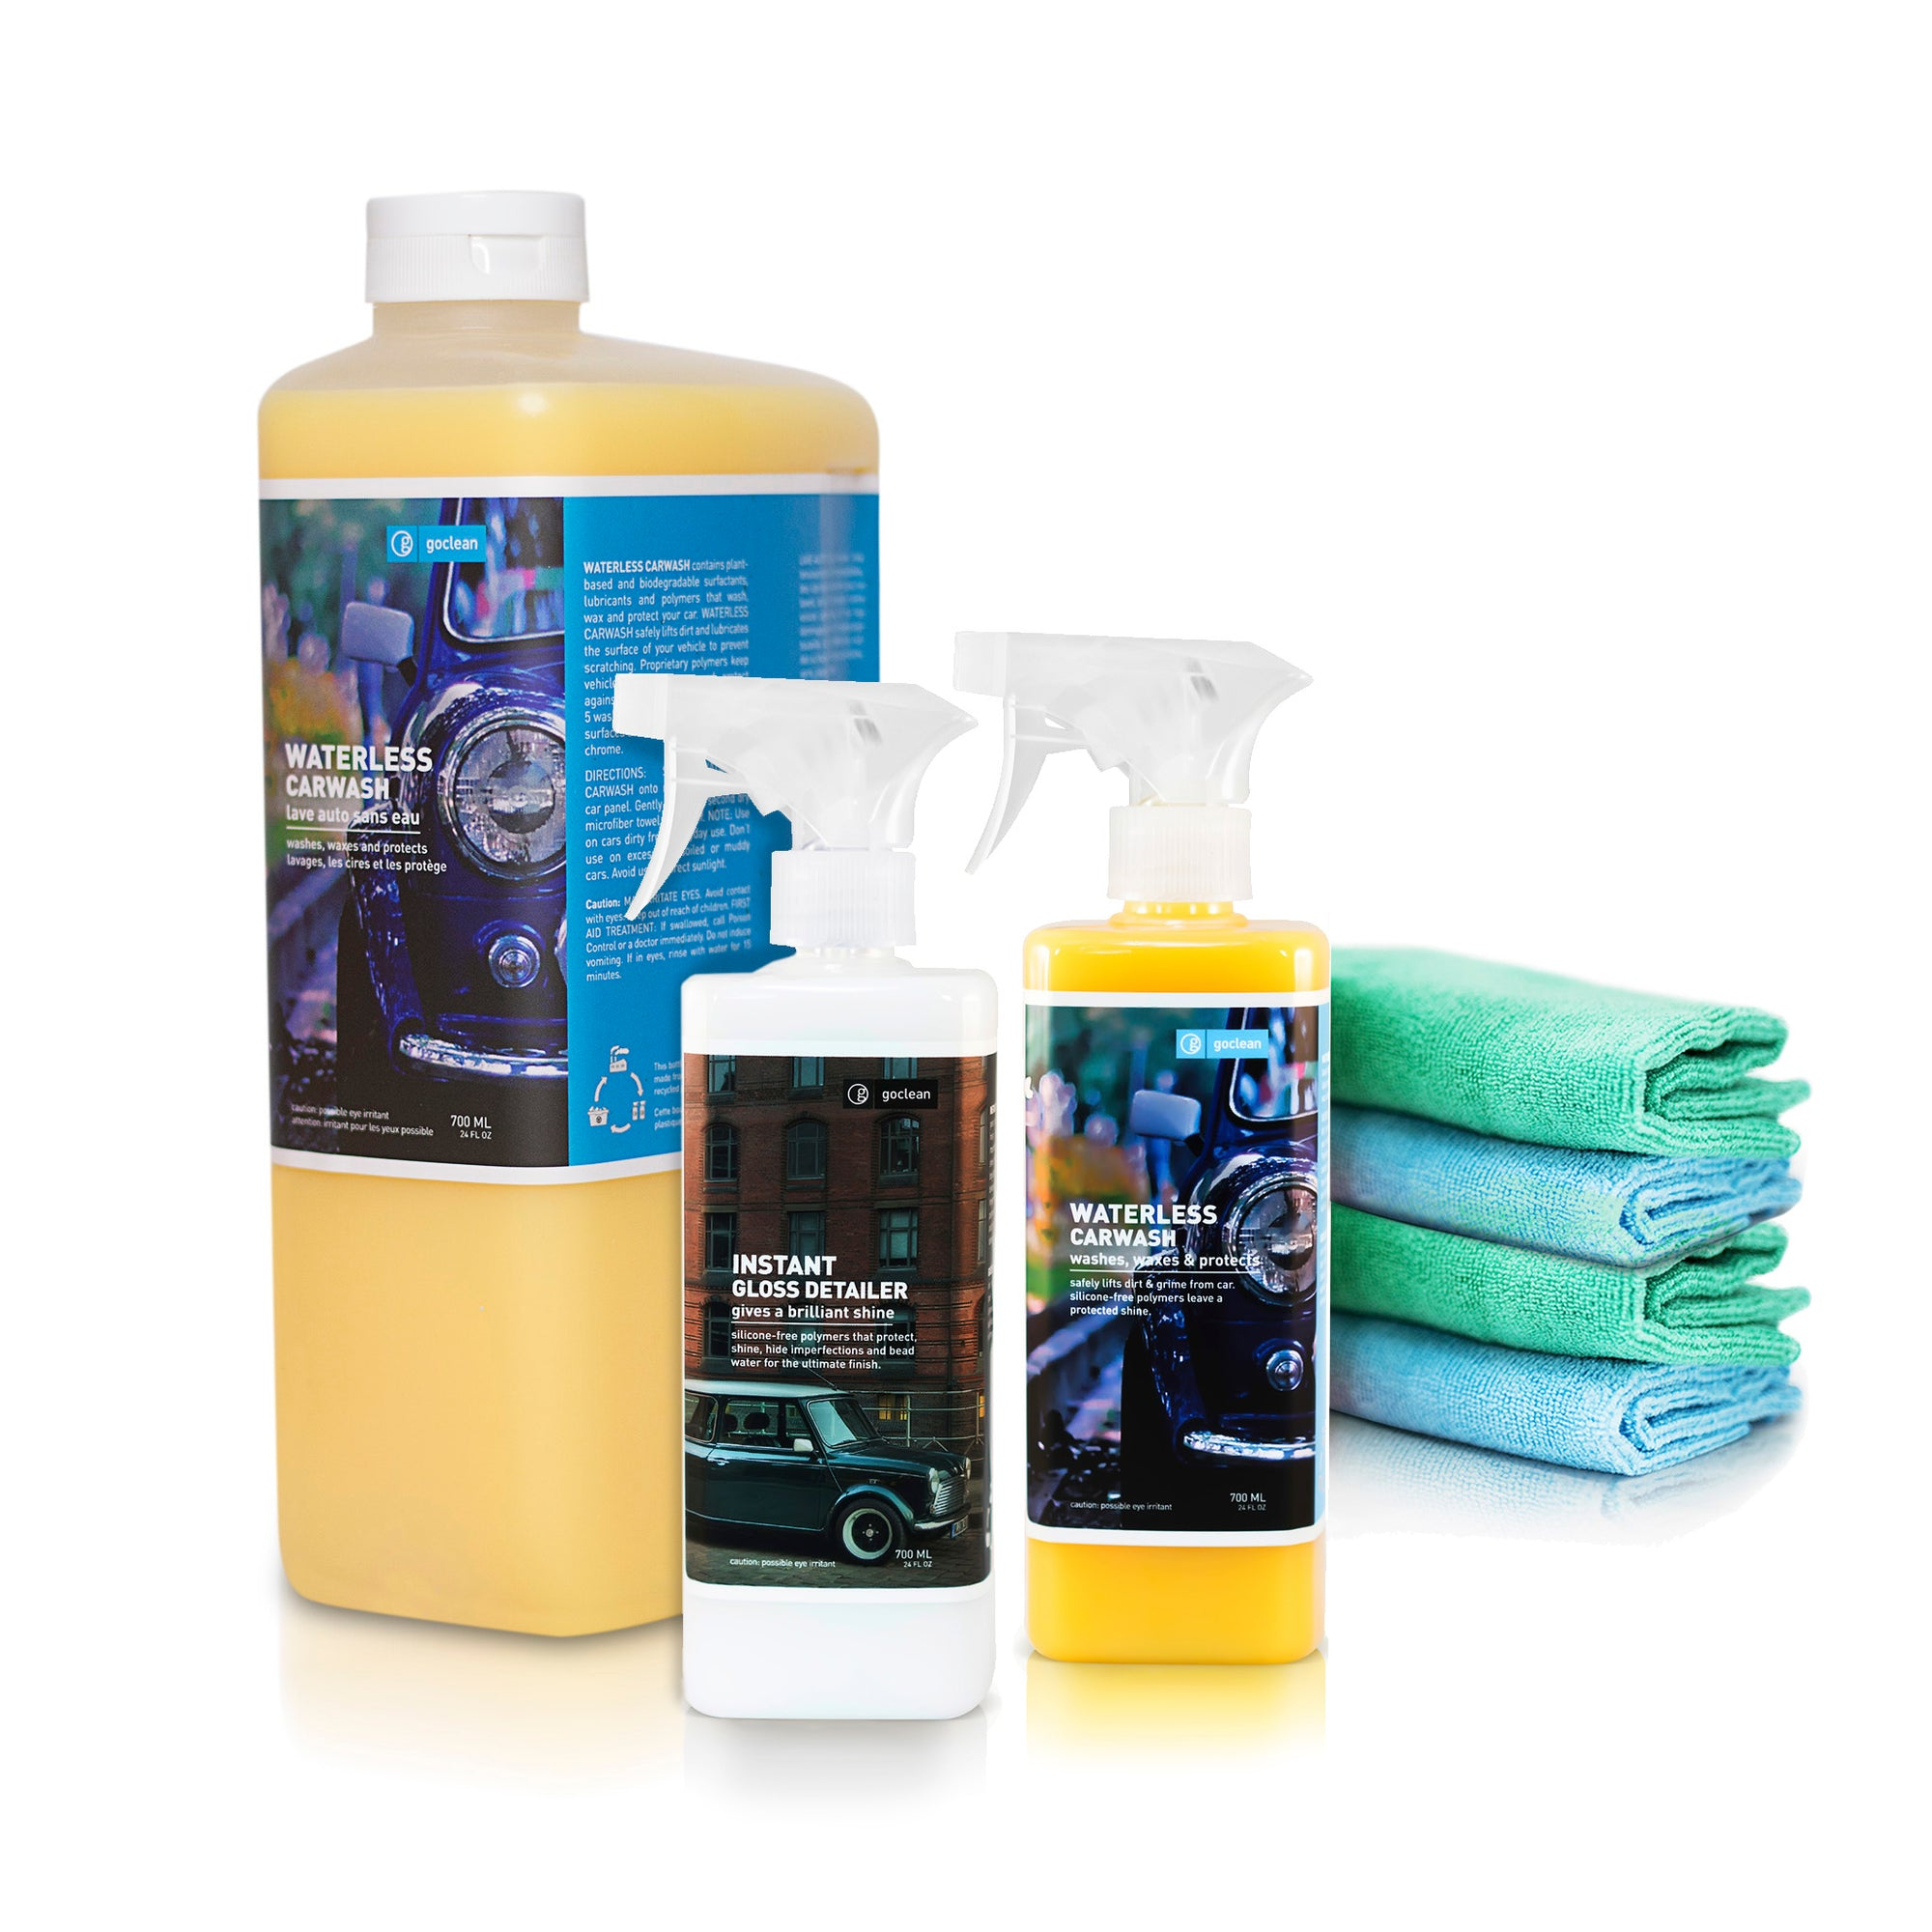 WATERLESS CAR WASH & POLISH BUNDLE WITH REFILL